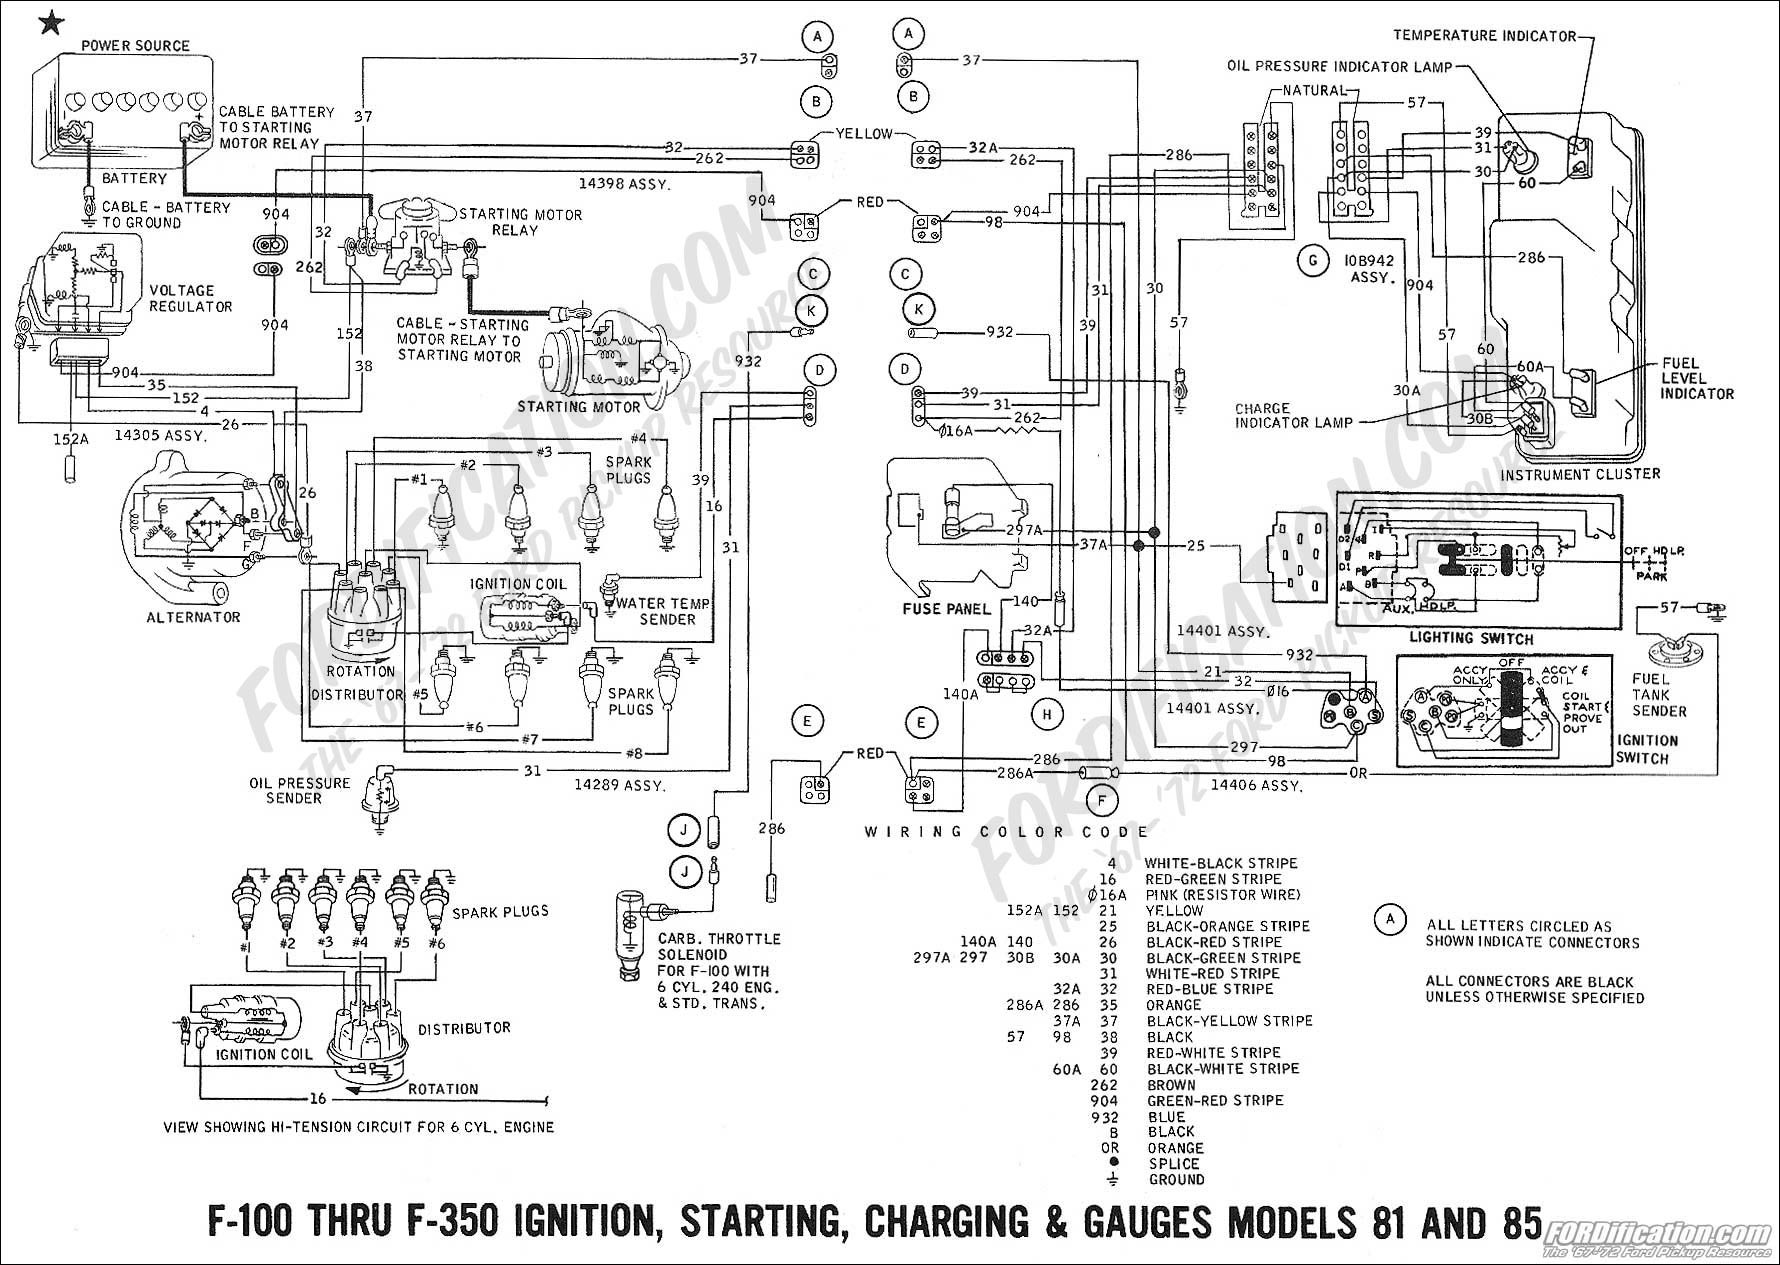 ... Wiring Diagram 96 Saturn Sc1